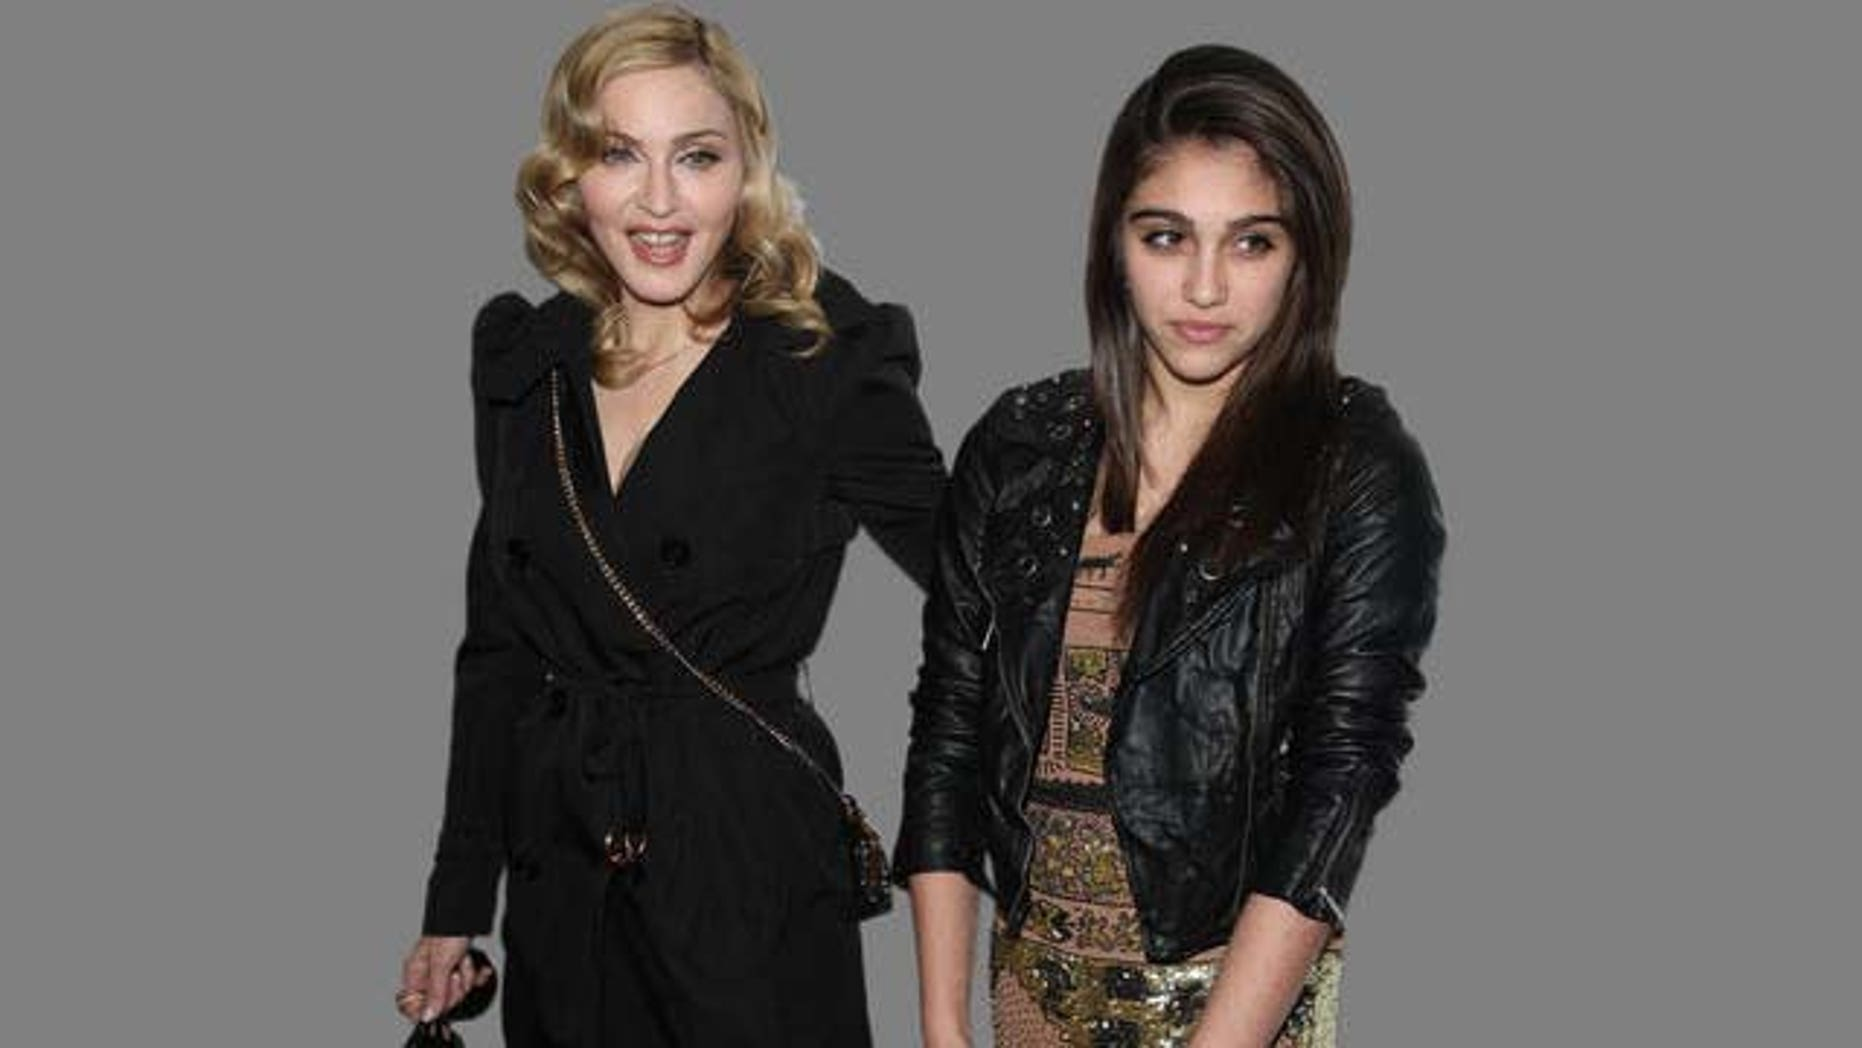 Madonna and Lourdes Leon attend the 2nd Annual Bent On Learning Benefit in New York, on Wednesday, April 28, 2010. (AP Photo/Peter Kramer)